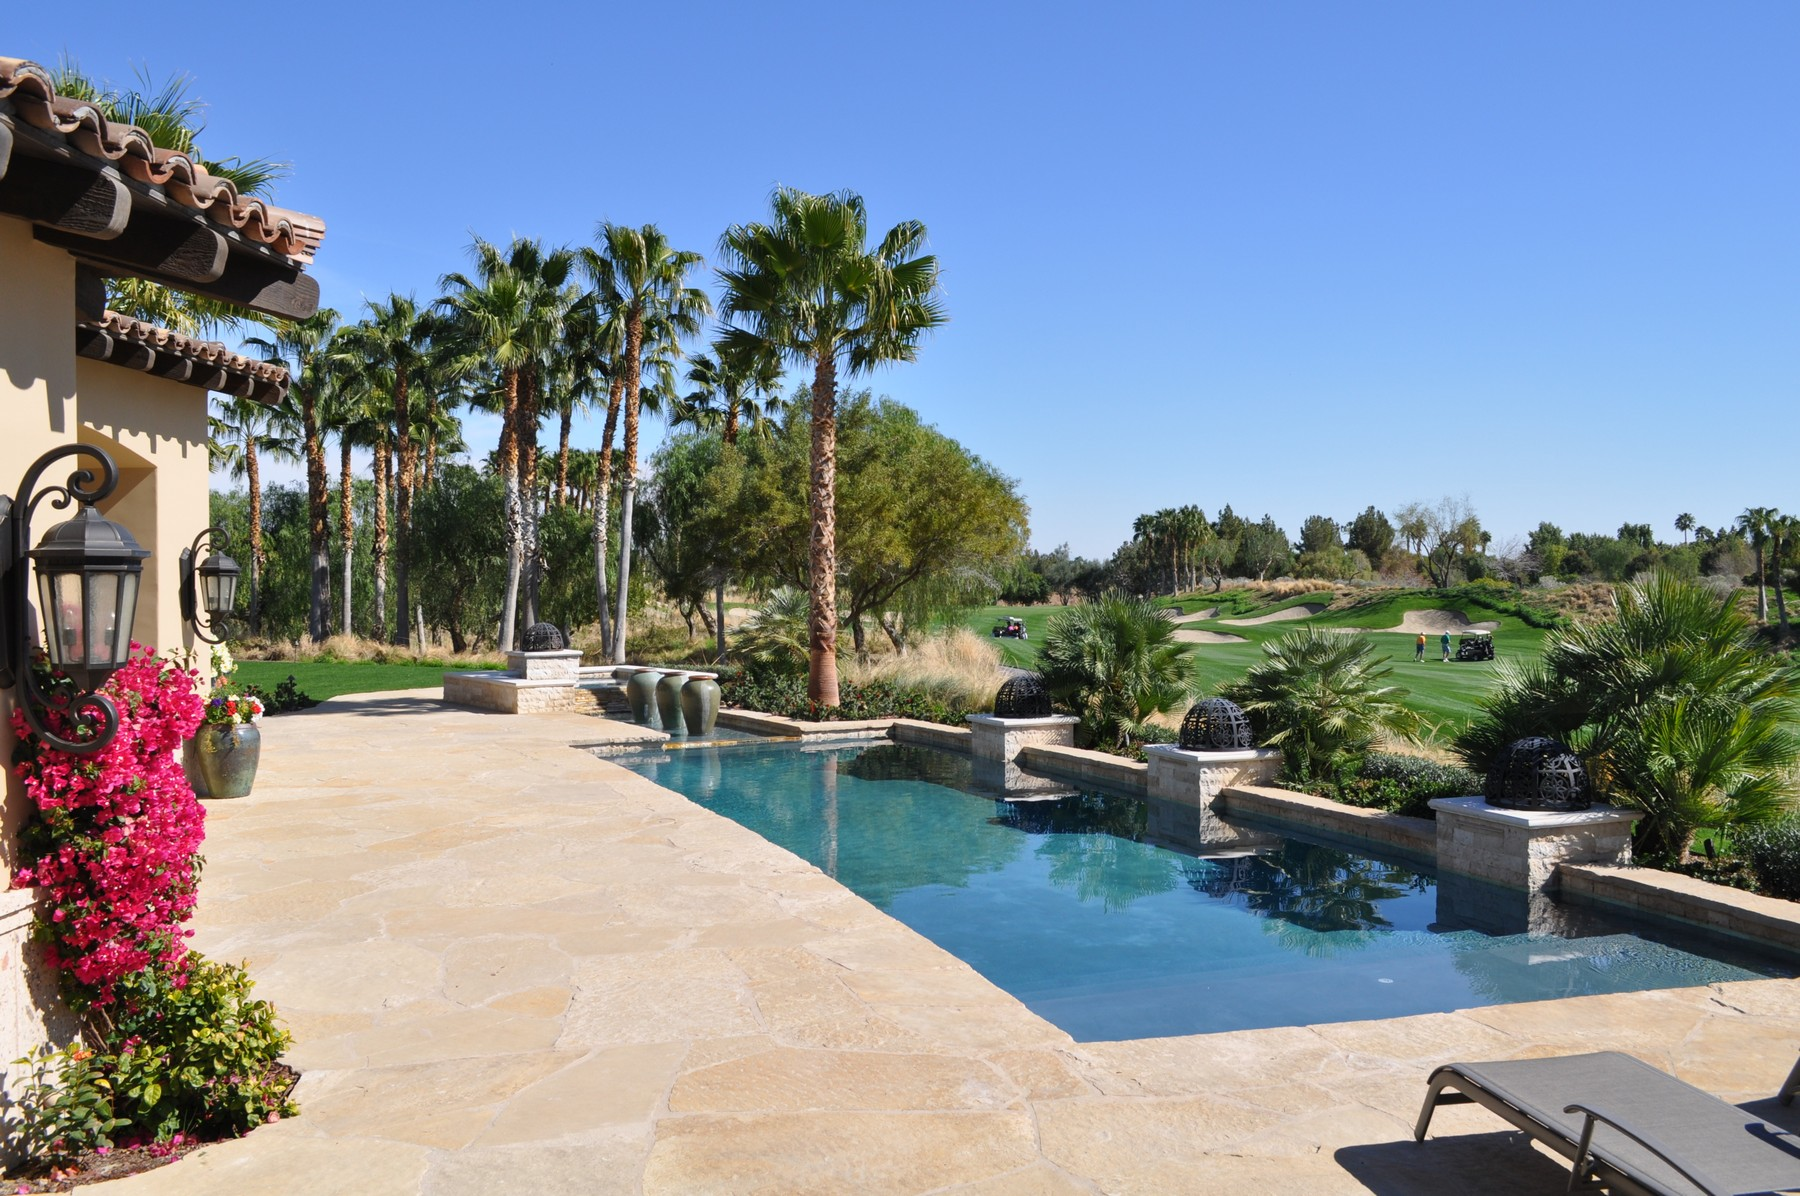 Single Family Home for Sale at 53824 Via Bellagio La Quinta, California 92253 United States